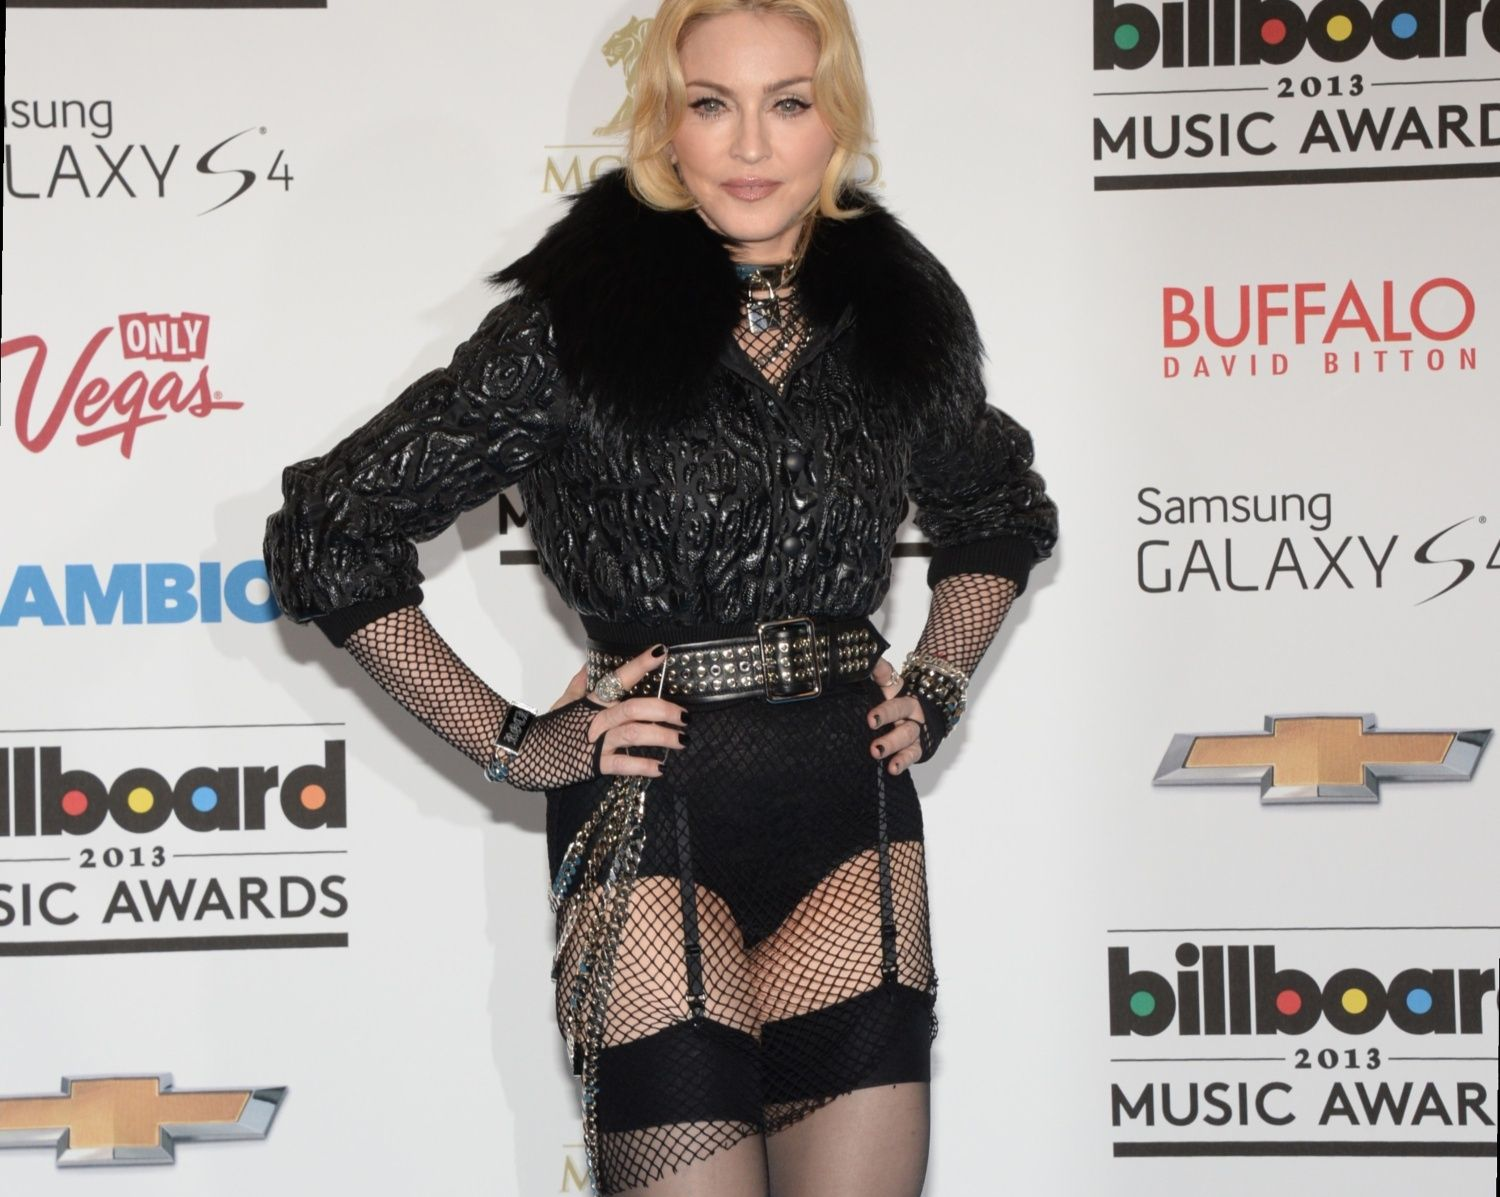 #Madonna at #2013 #BillboardMusicAwards #MDNATour